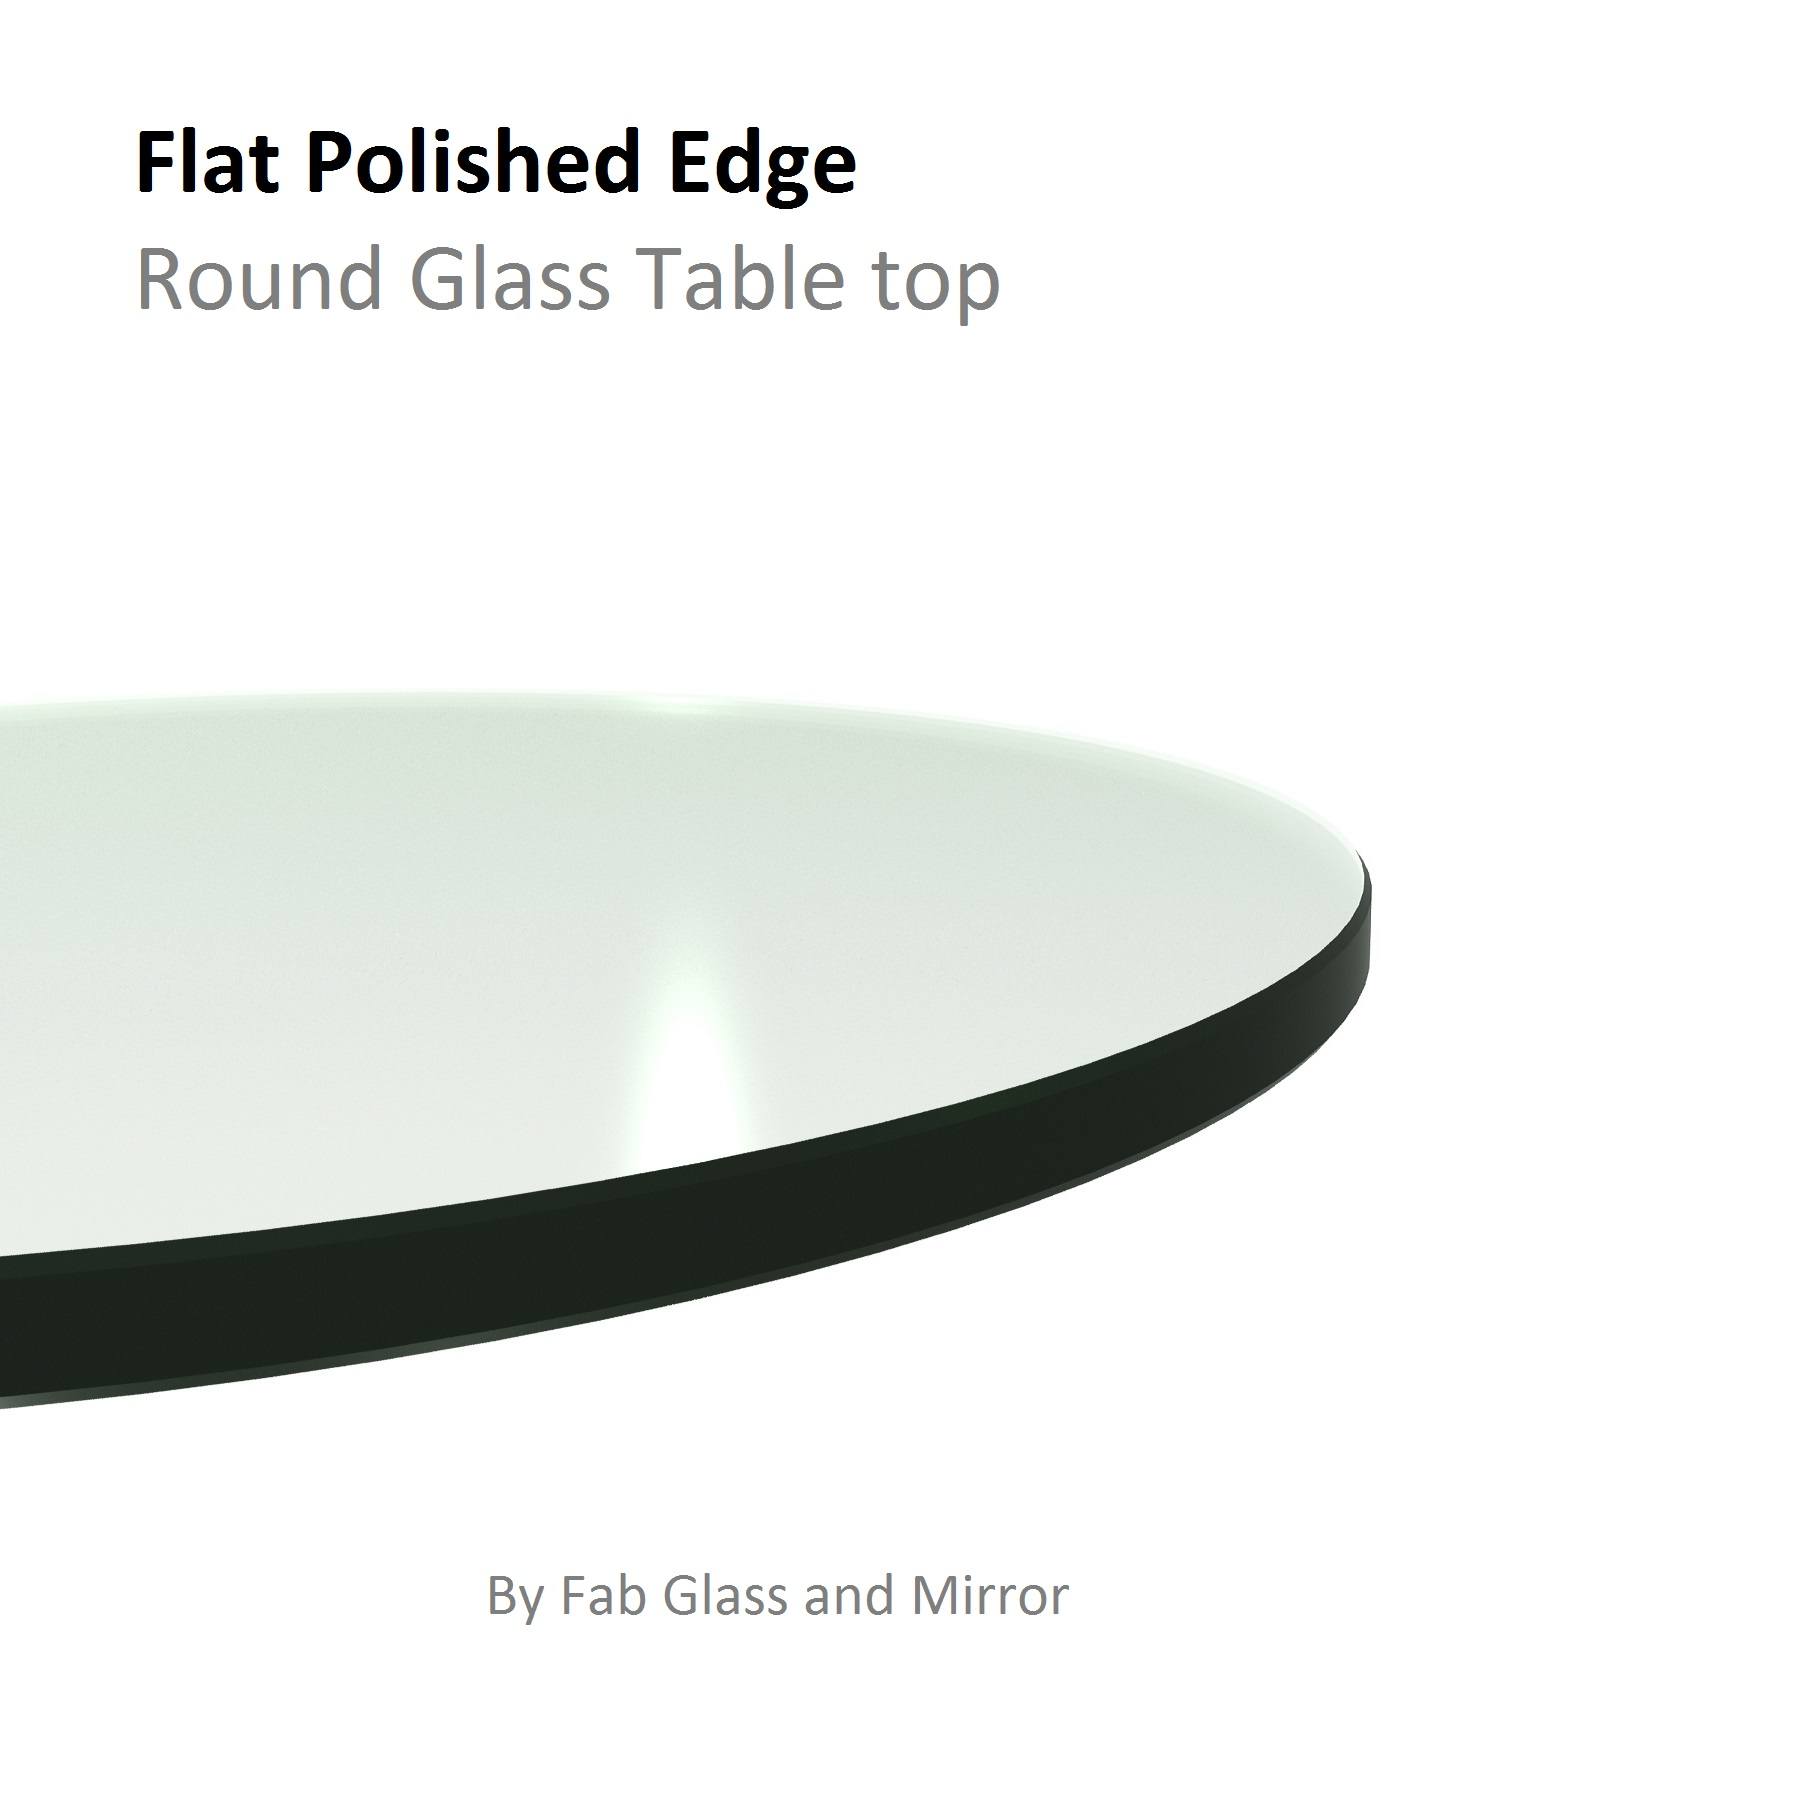 Fab Glass and Mirror Round Clear Glass Table Top with Flat Polish Edge Tempered